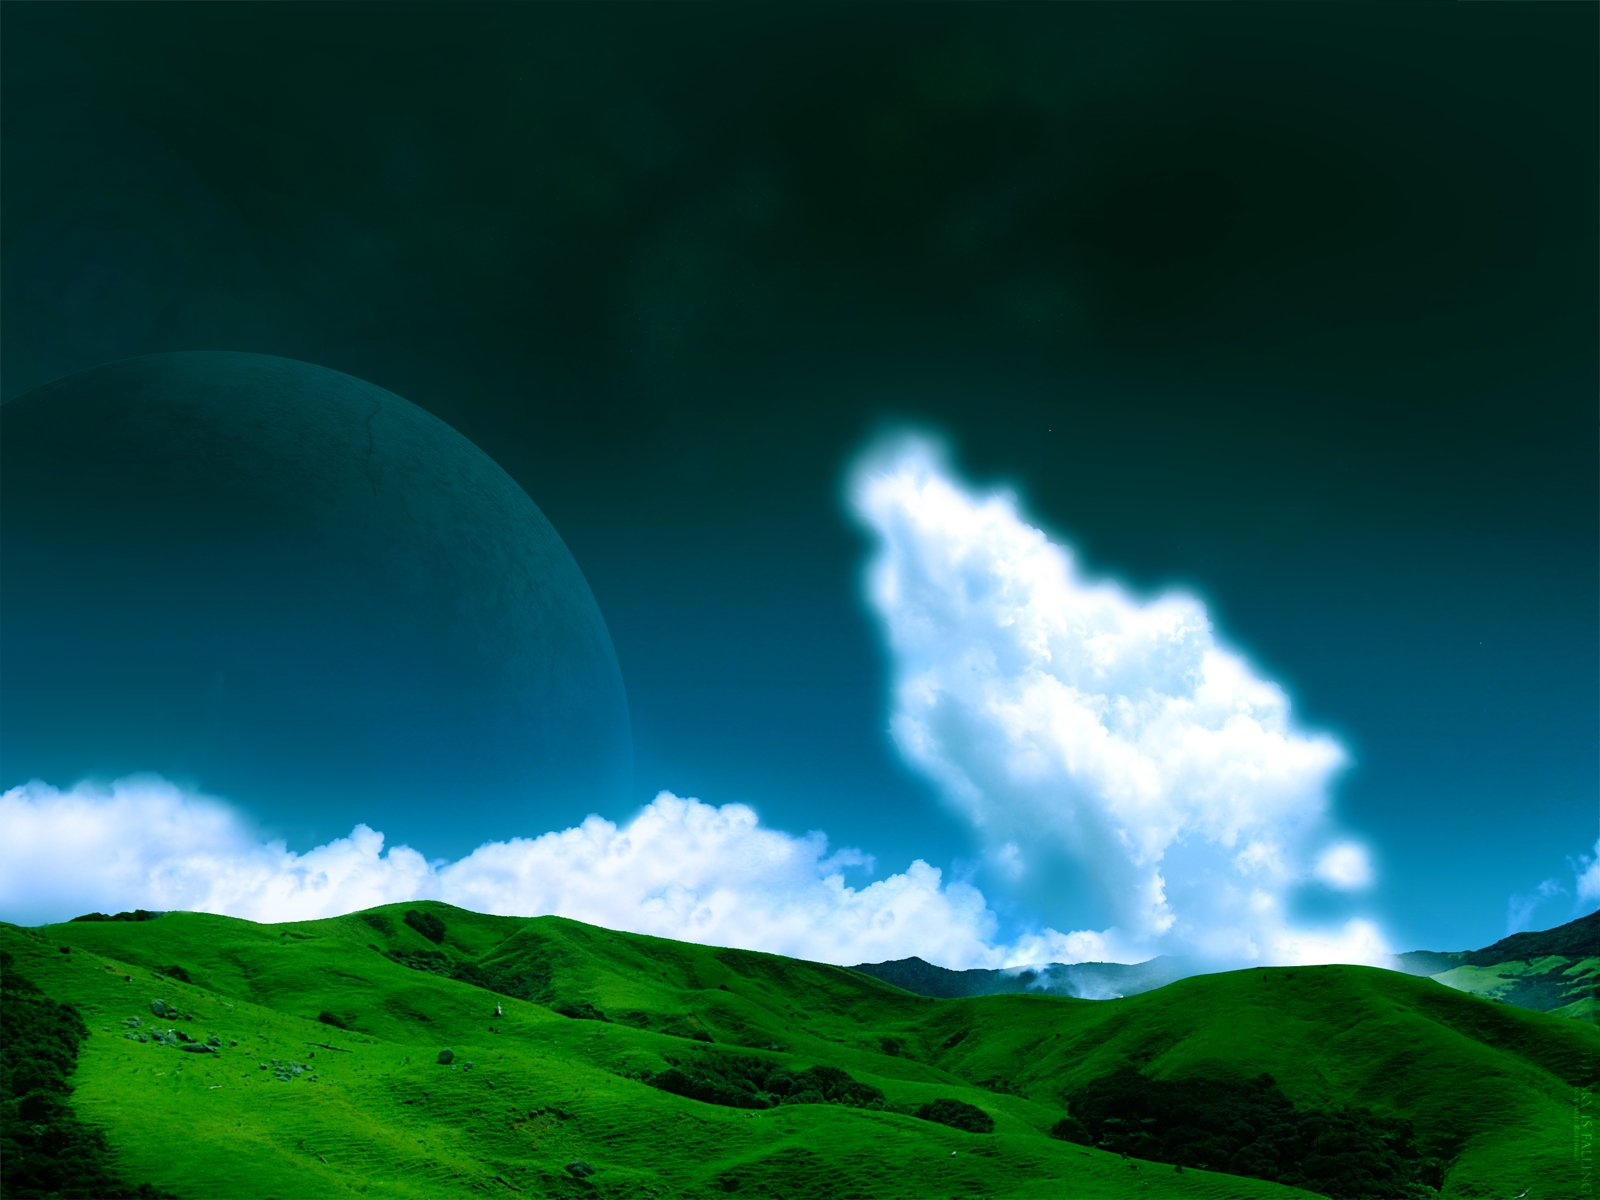 Sci Fi - Planet Rise  Earth Green Grass Cloud Planet Sky Blue Wallpaper